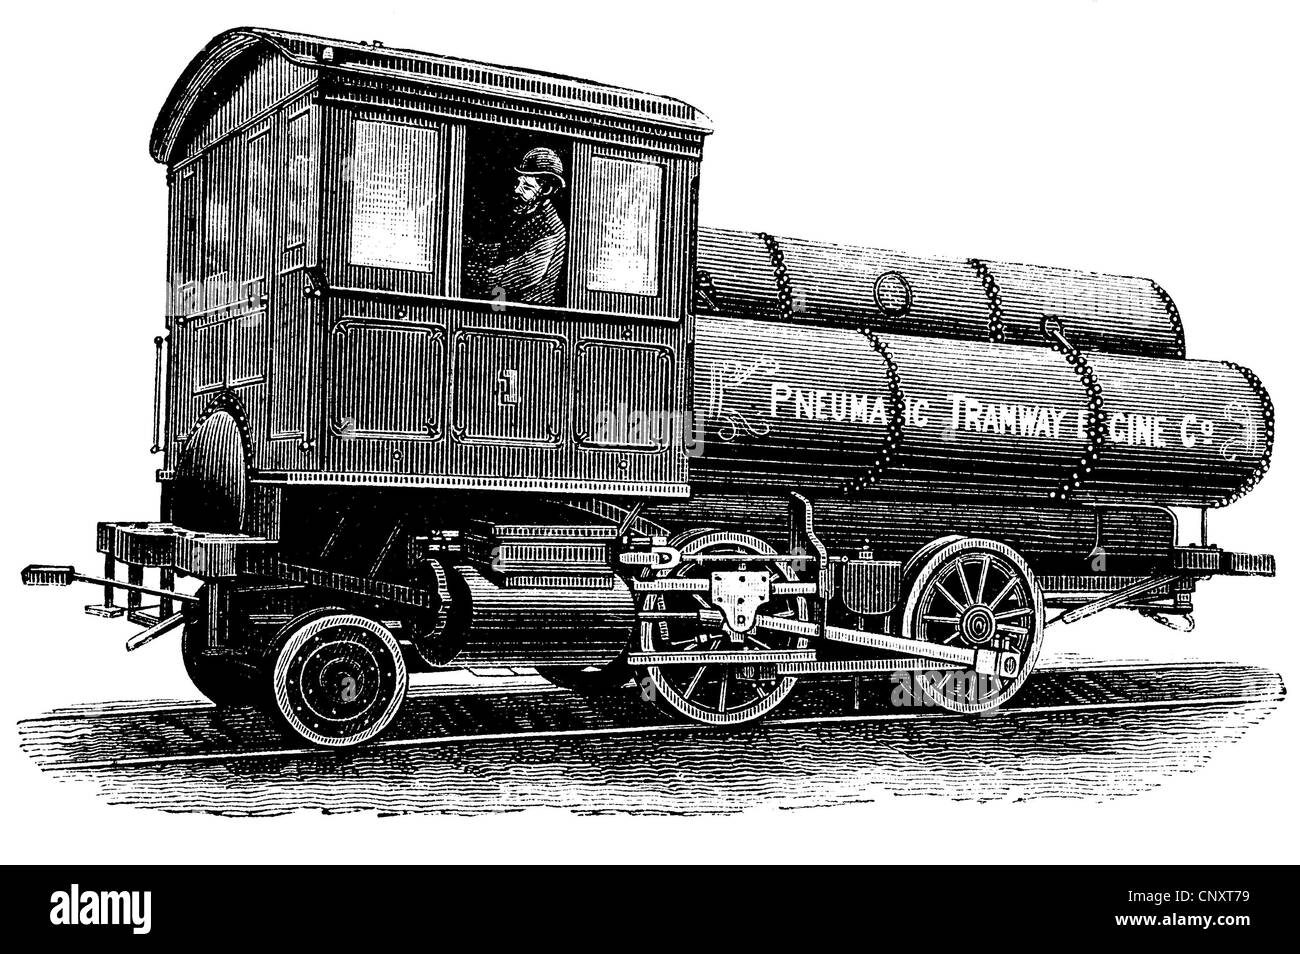 Locomotive operated by compressed air according to the system by Robert Hardie, historical engraving, 1888 - Stock Image